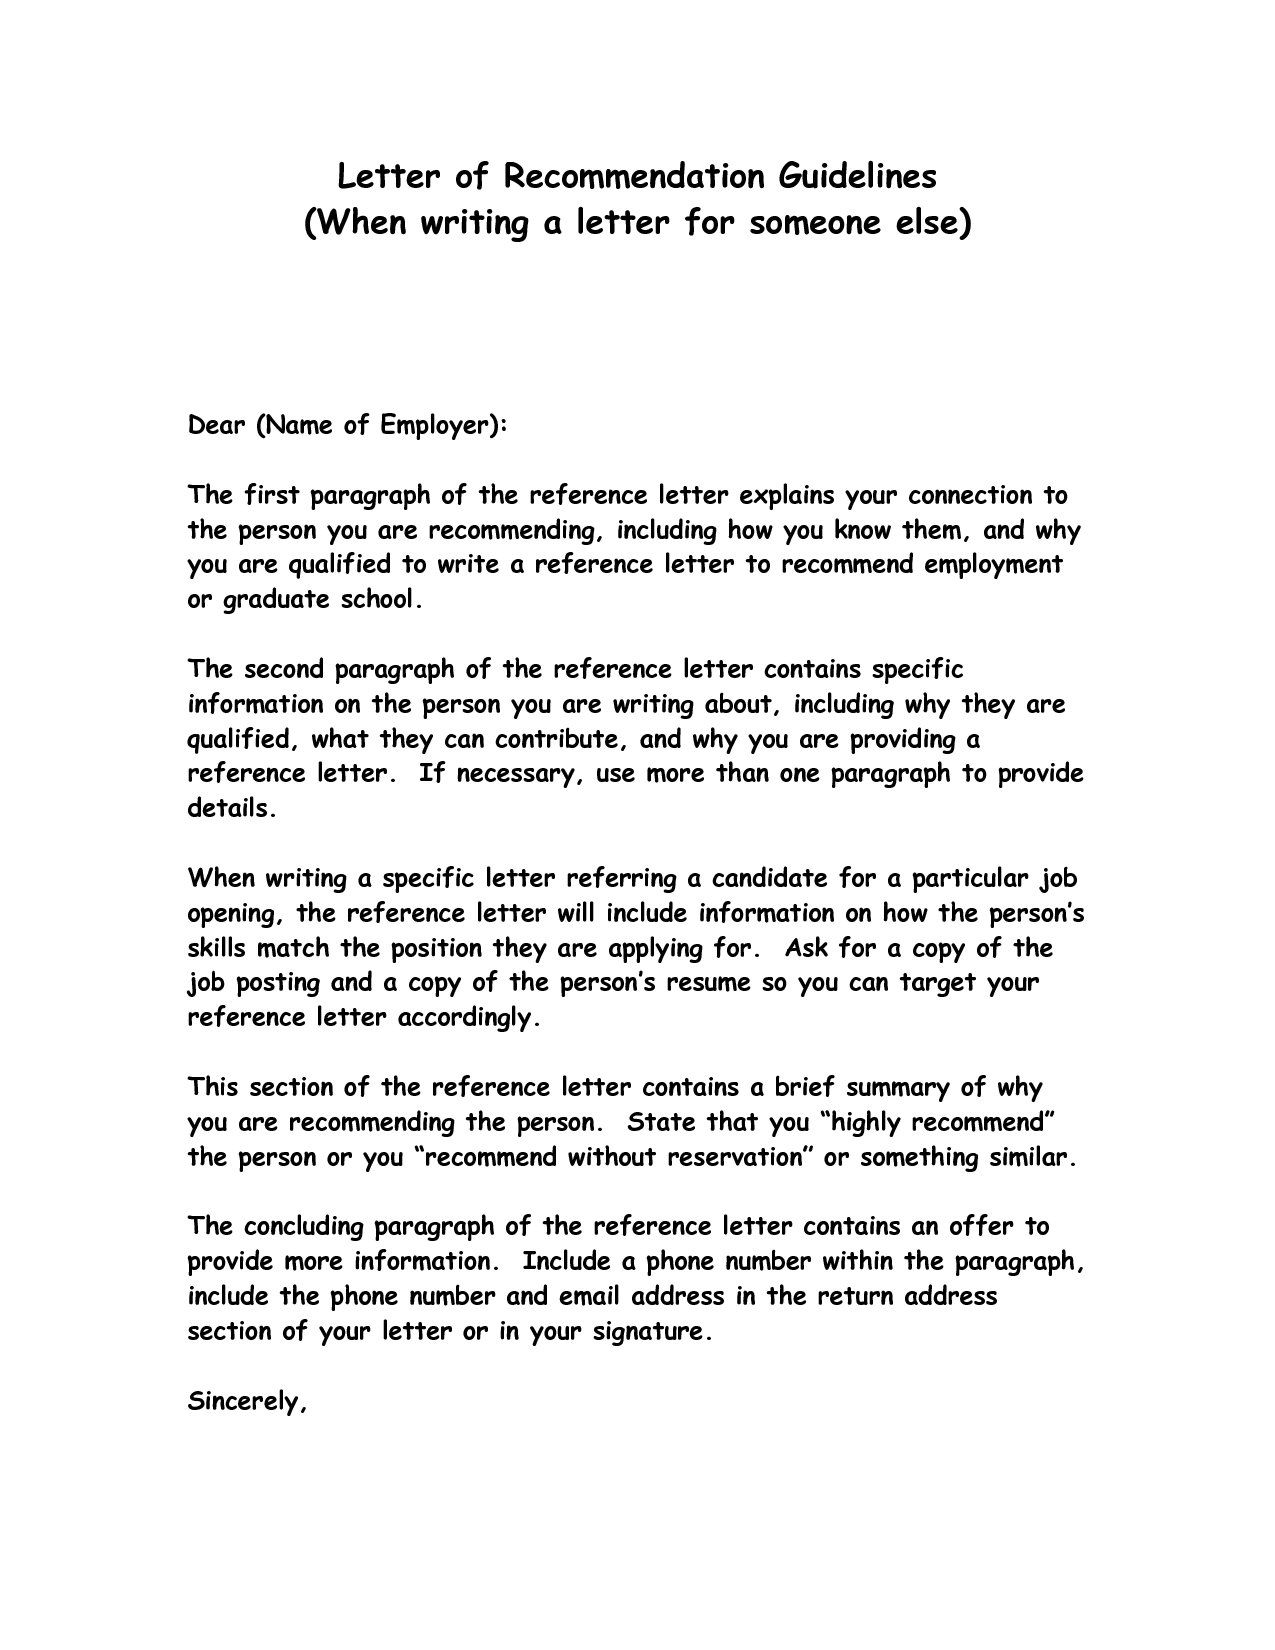 How to write a reference letter letter letter example how to write a reference letter letter spiritdancerdesigns